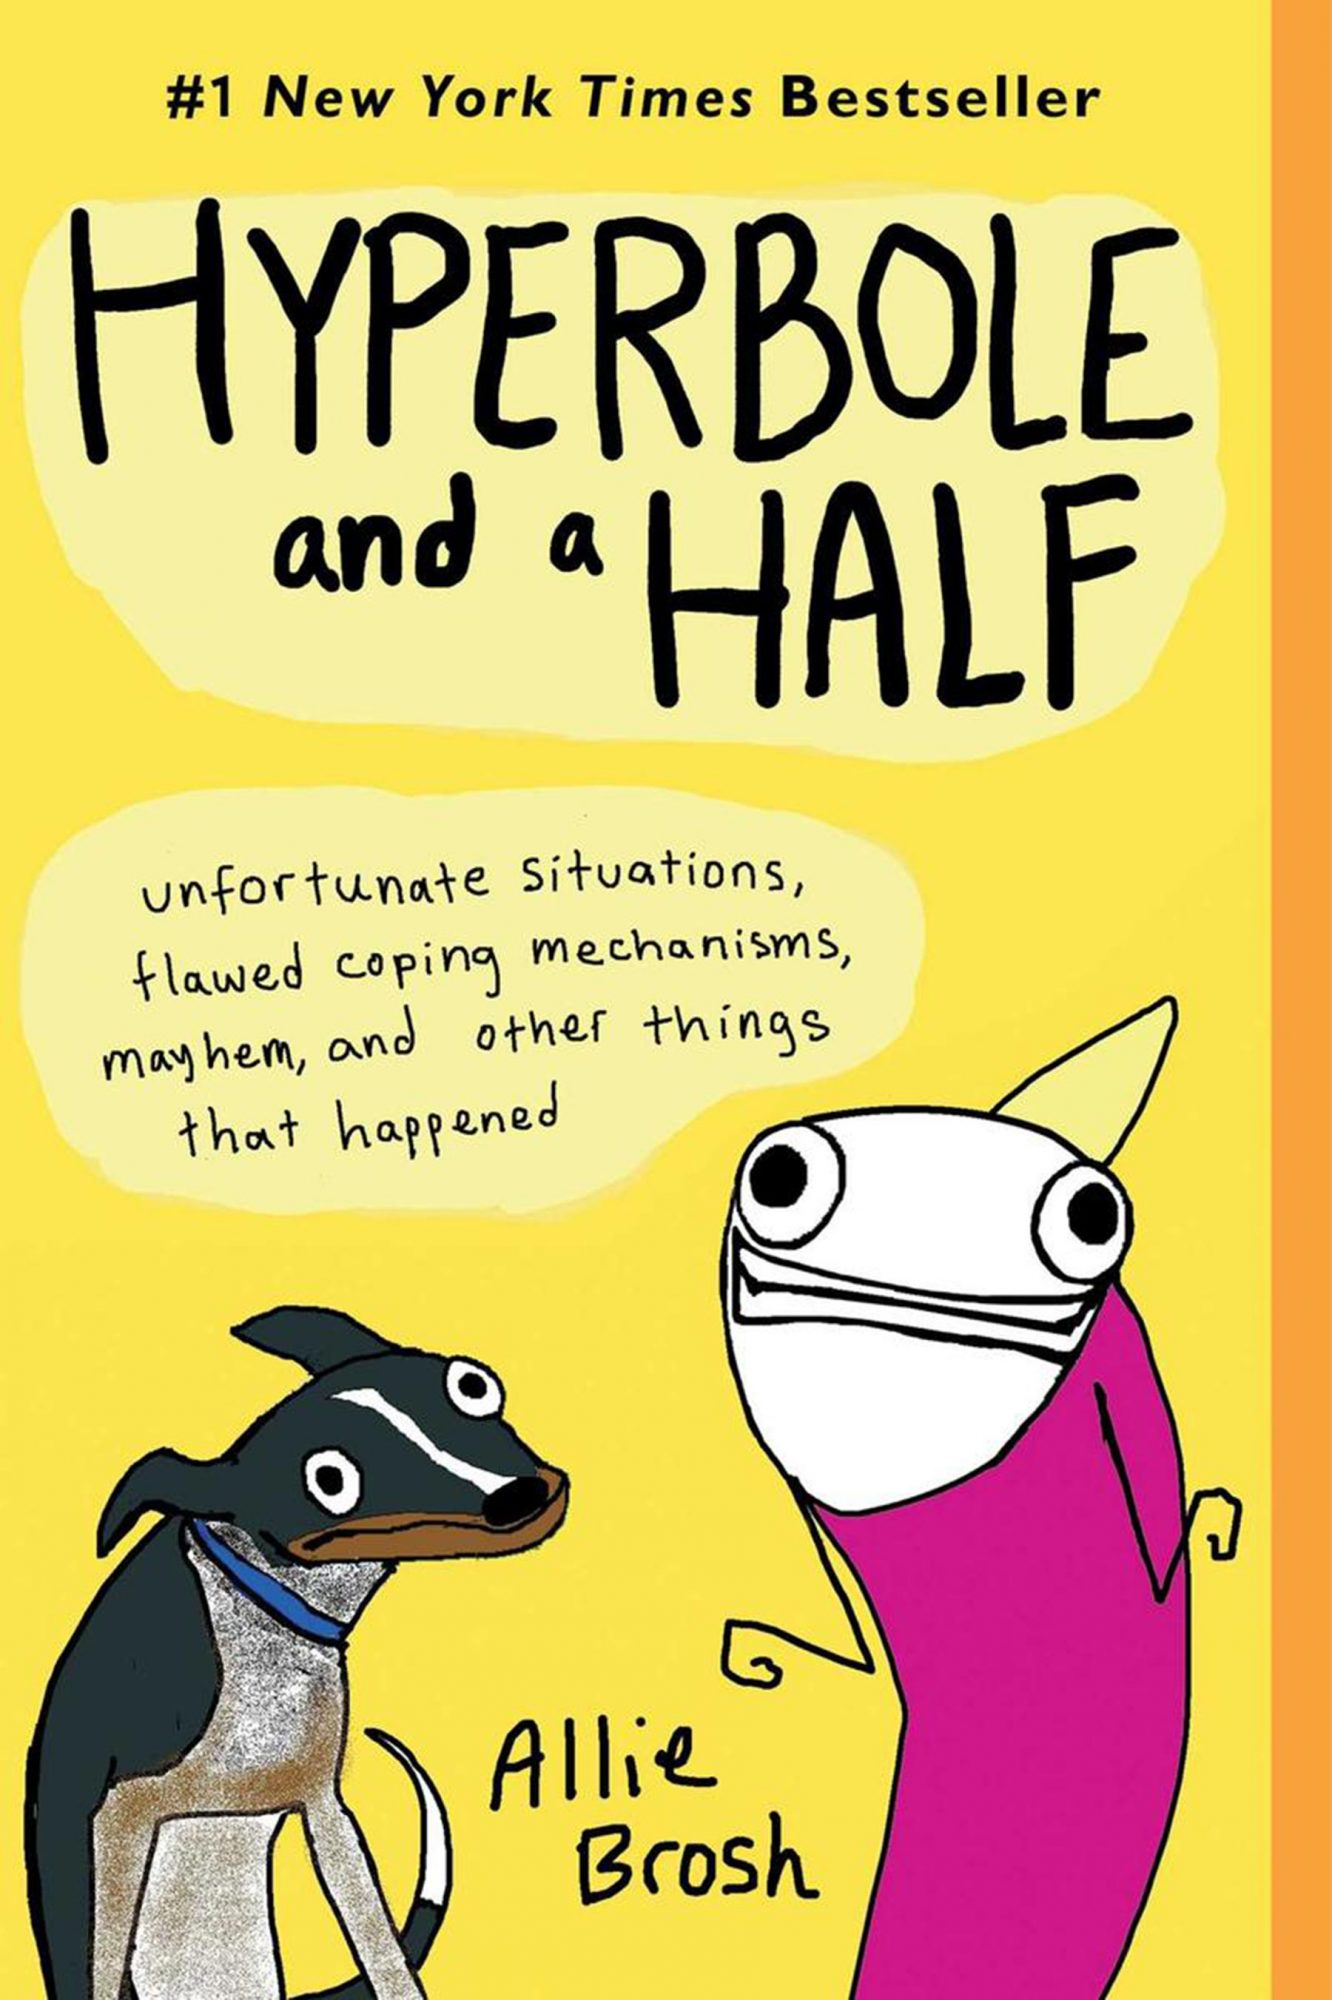 Hyperbole and Half, by Allie Brosh